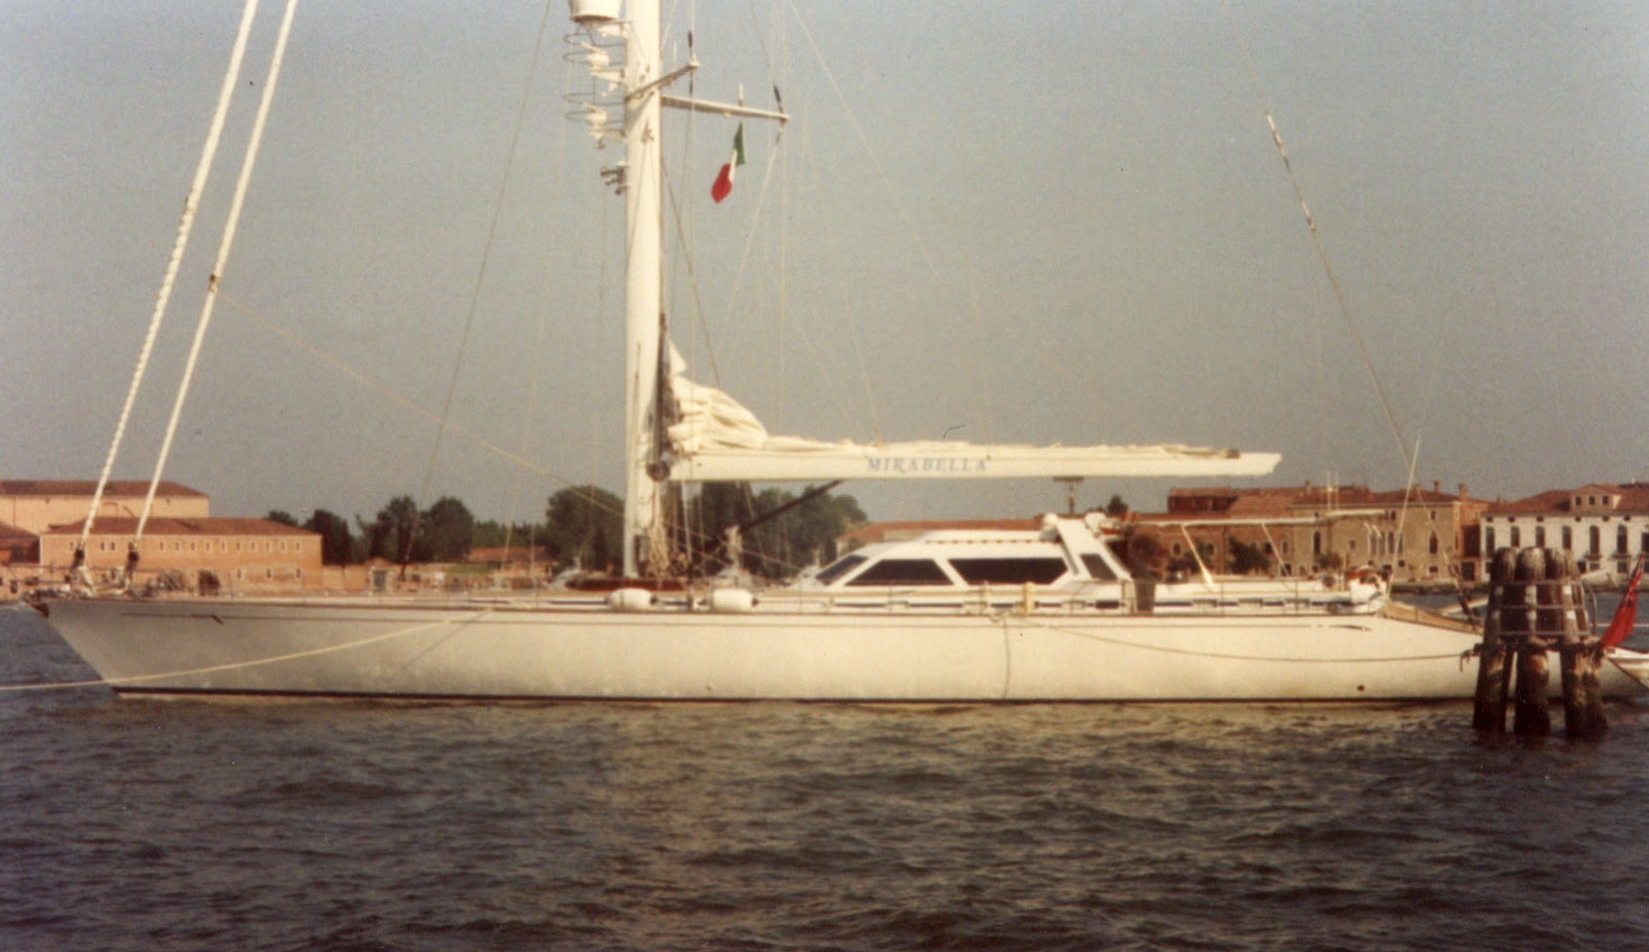 MIRABELLA in Venice: 40-Meter sailing Yacht. Built Concorde Yachts - Thailand 1992